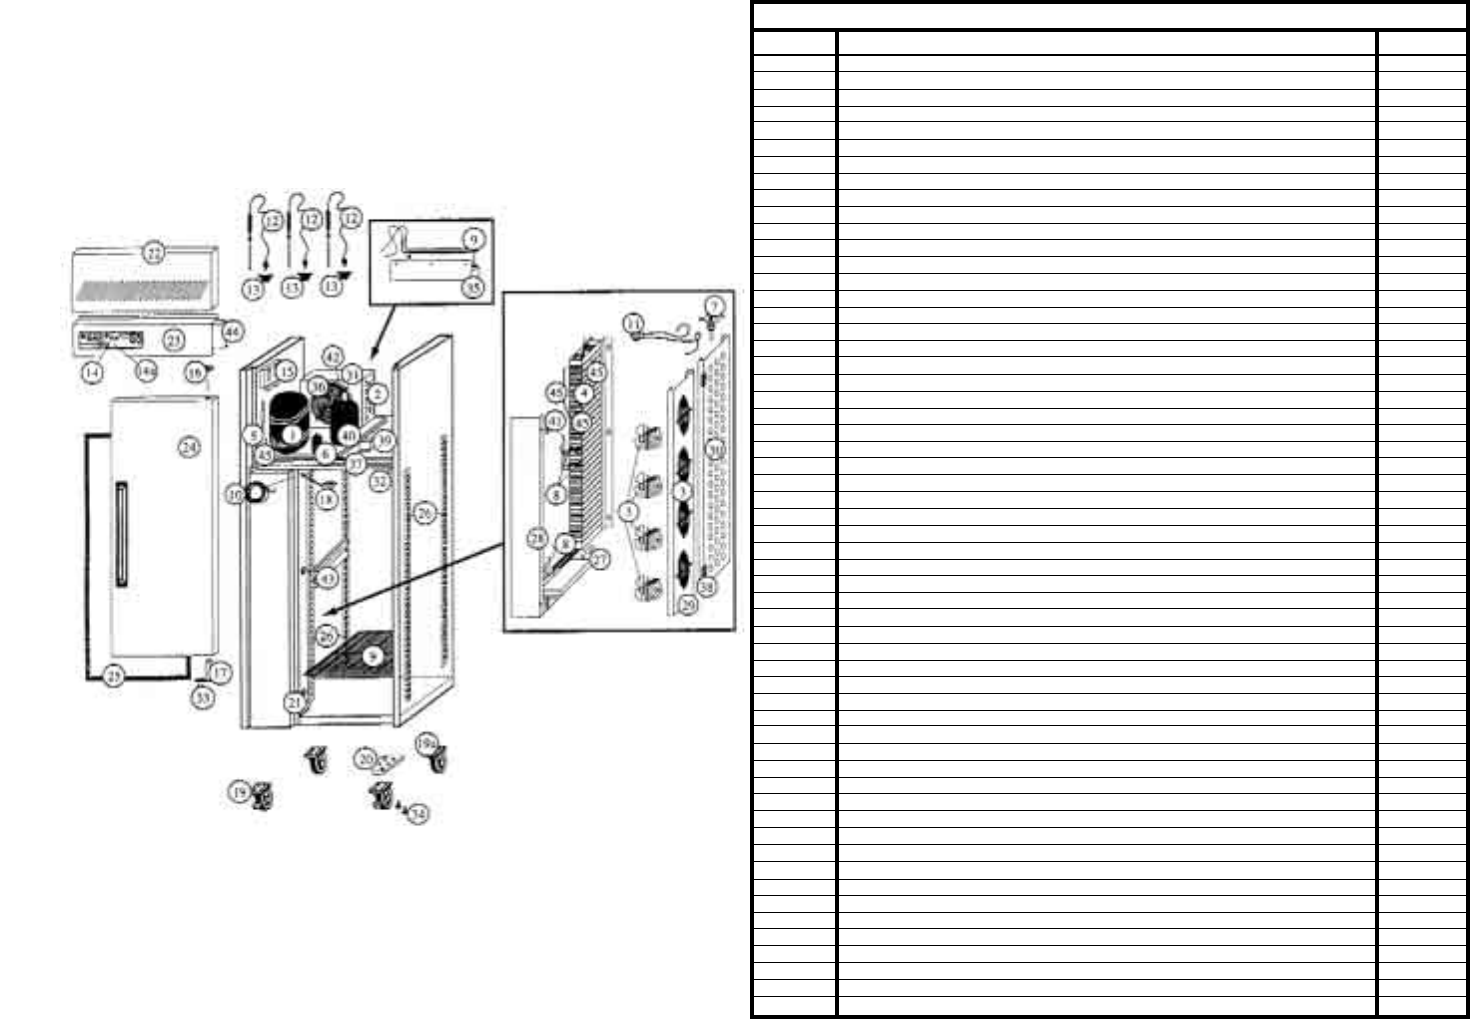 Victory Vbc 100 Wiring Diagram Schematic Diagrams Refrigeration Page 19 Of Refrigerator User Guide